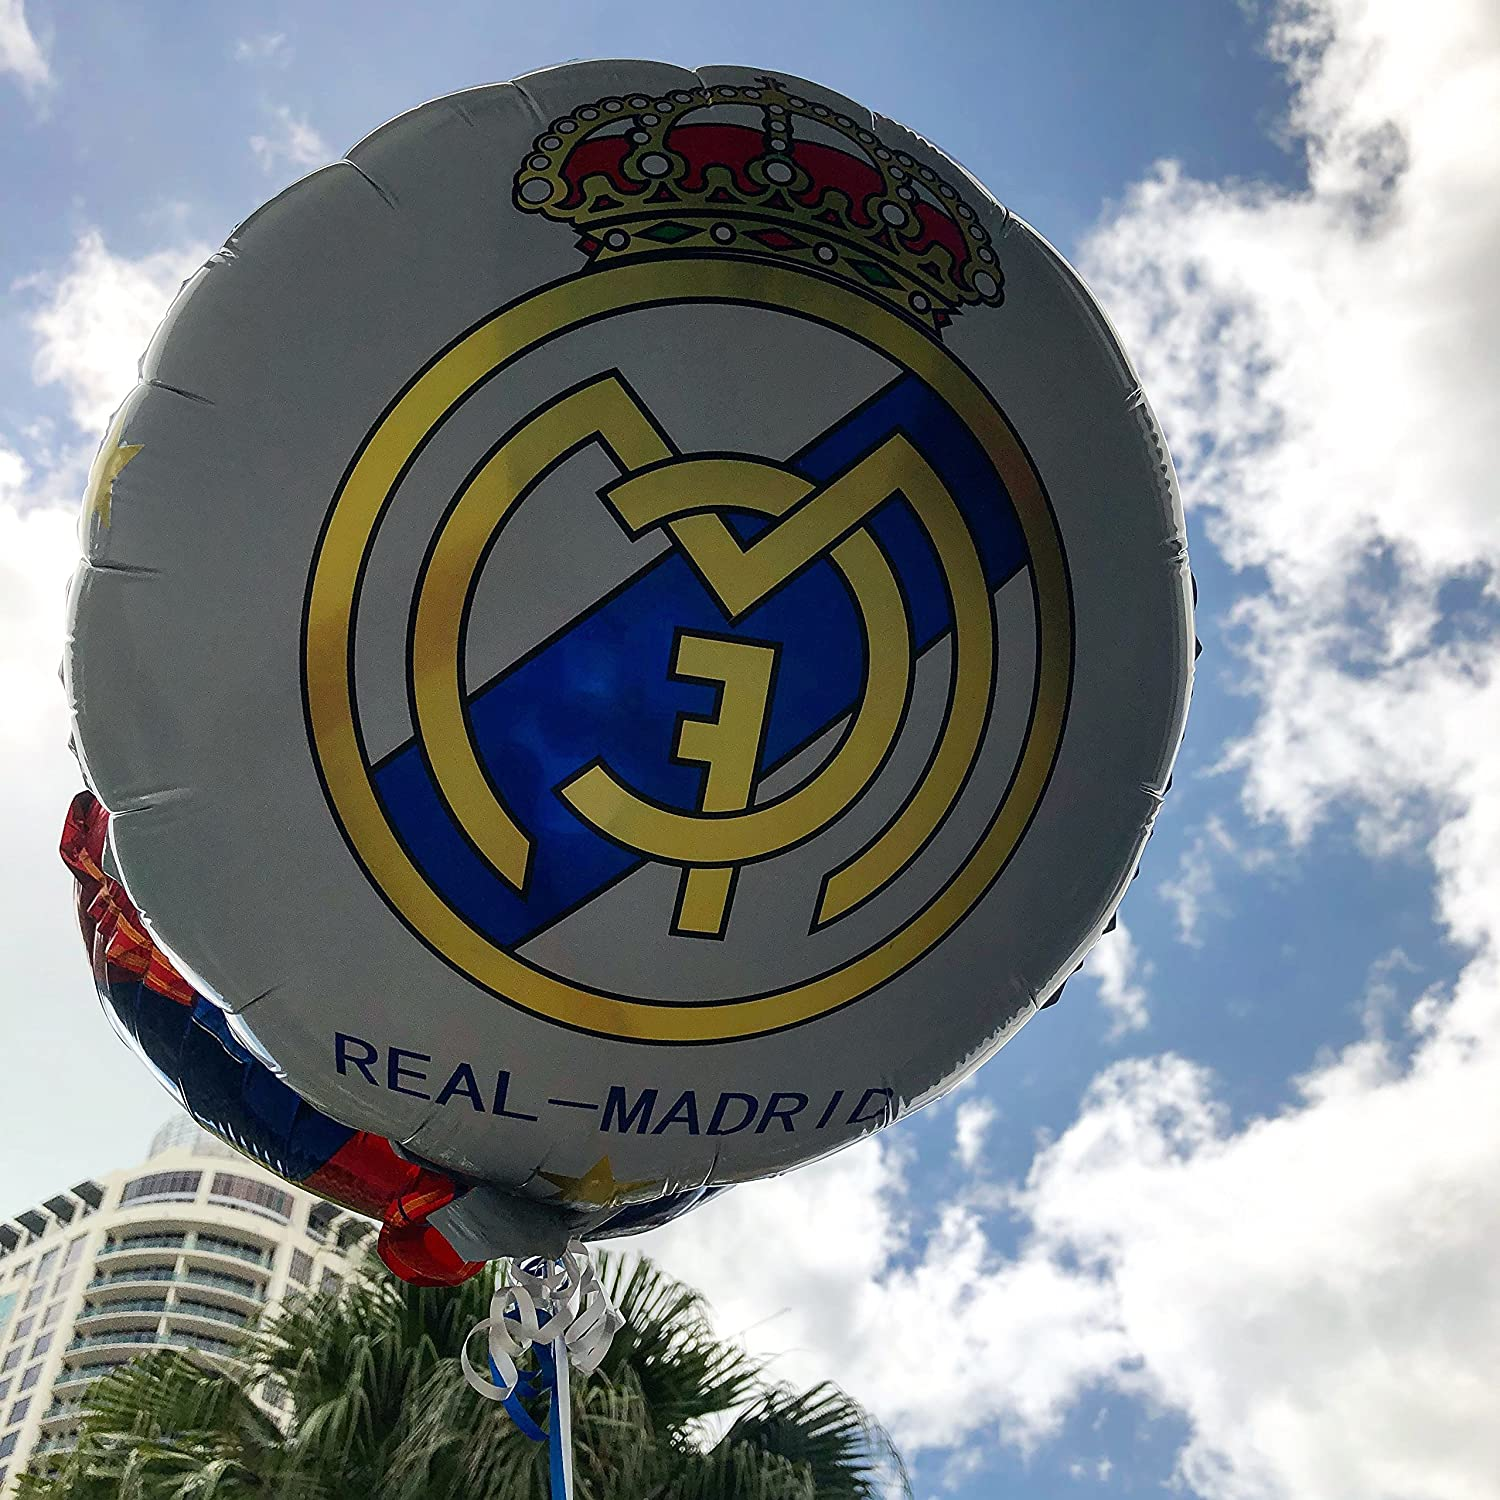 Amazon.com: Real Madrid globo de decoración de la fiesta de ...